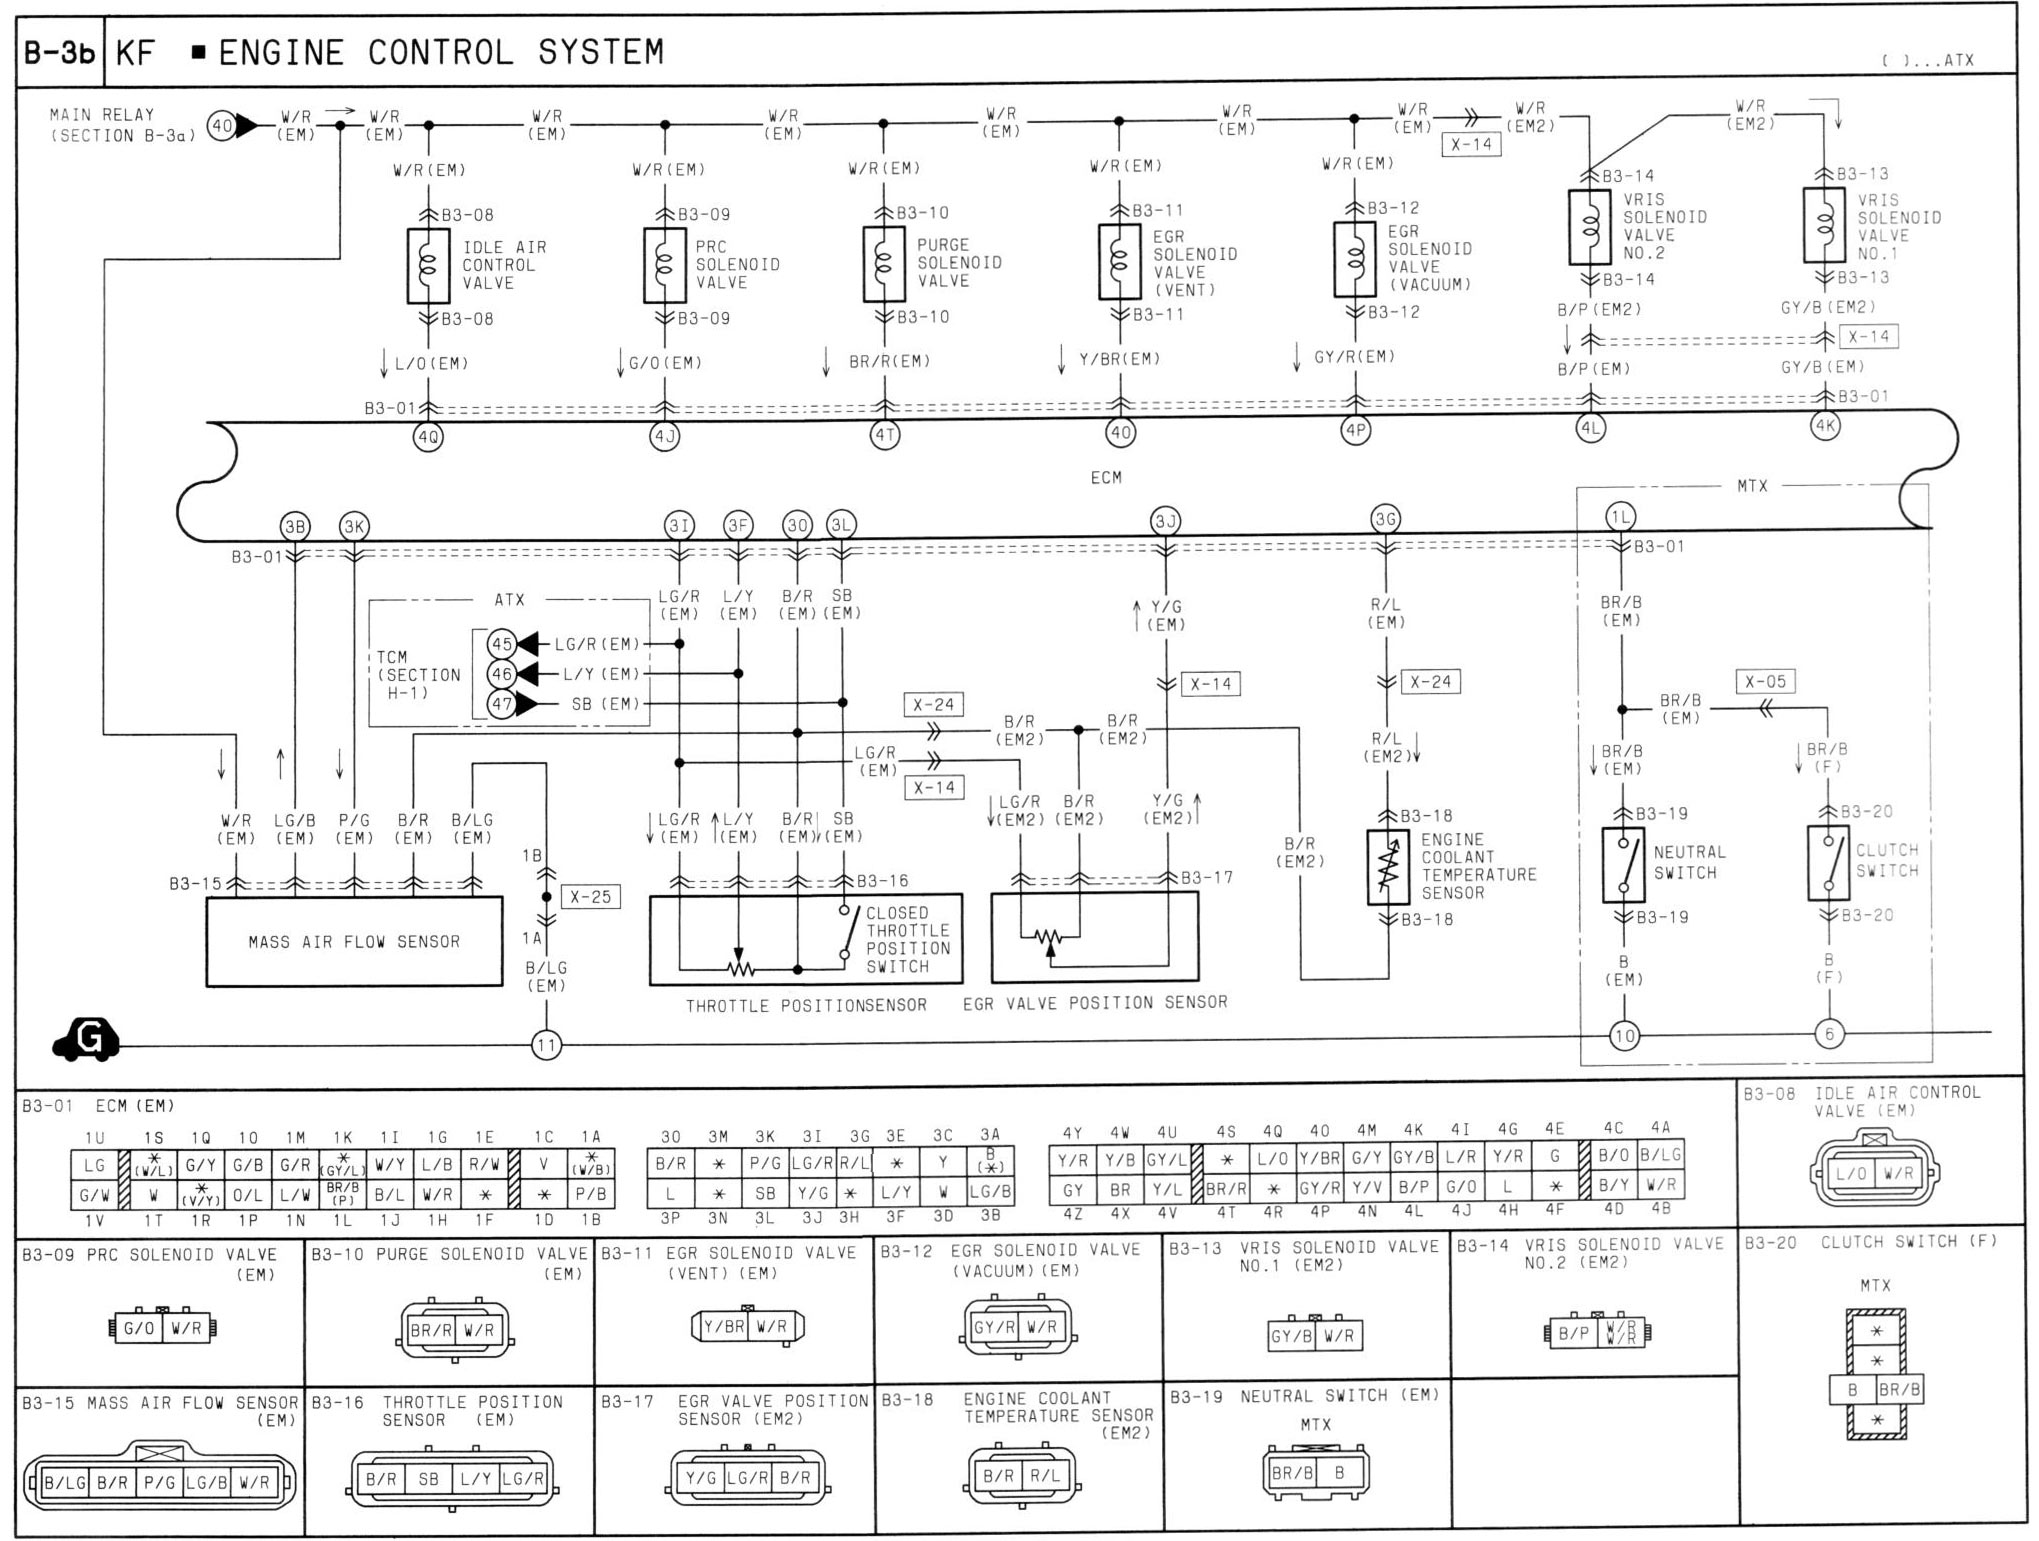 mazda wiring diagram pdf mx 4867  mazda b2600i b2200 wiring diagram legend color codes mazda 626 wiring diagram pdf mazda b2600i b2200 wiring diagram